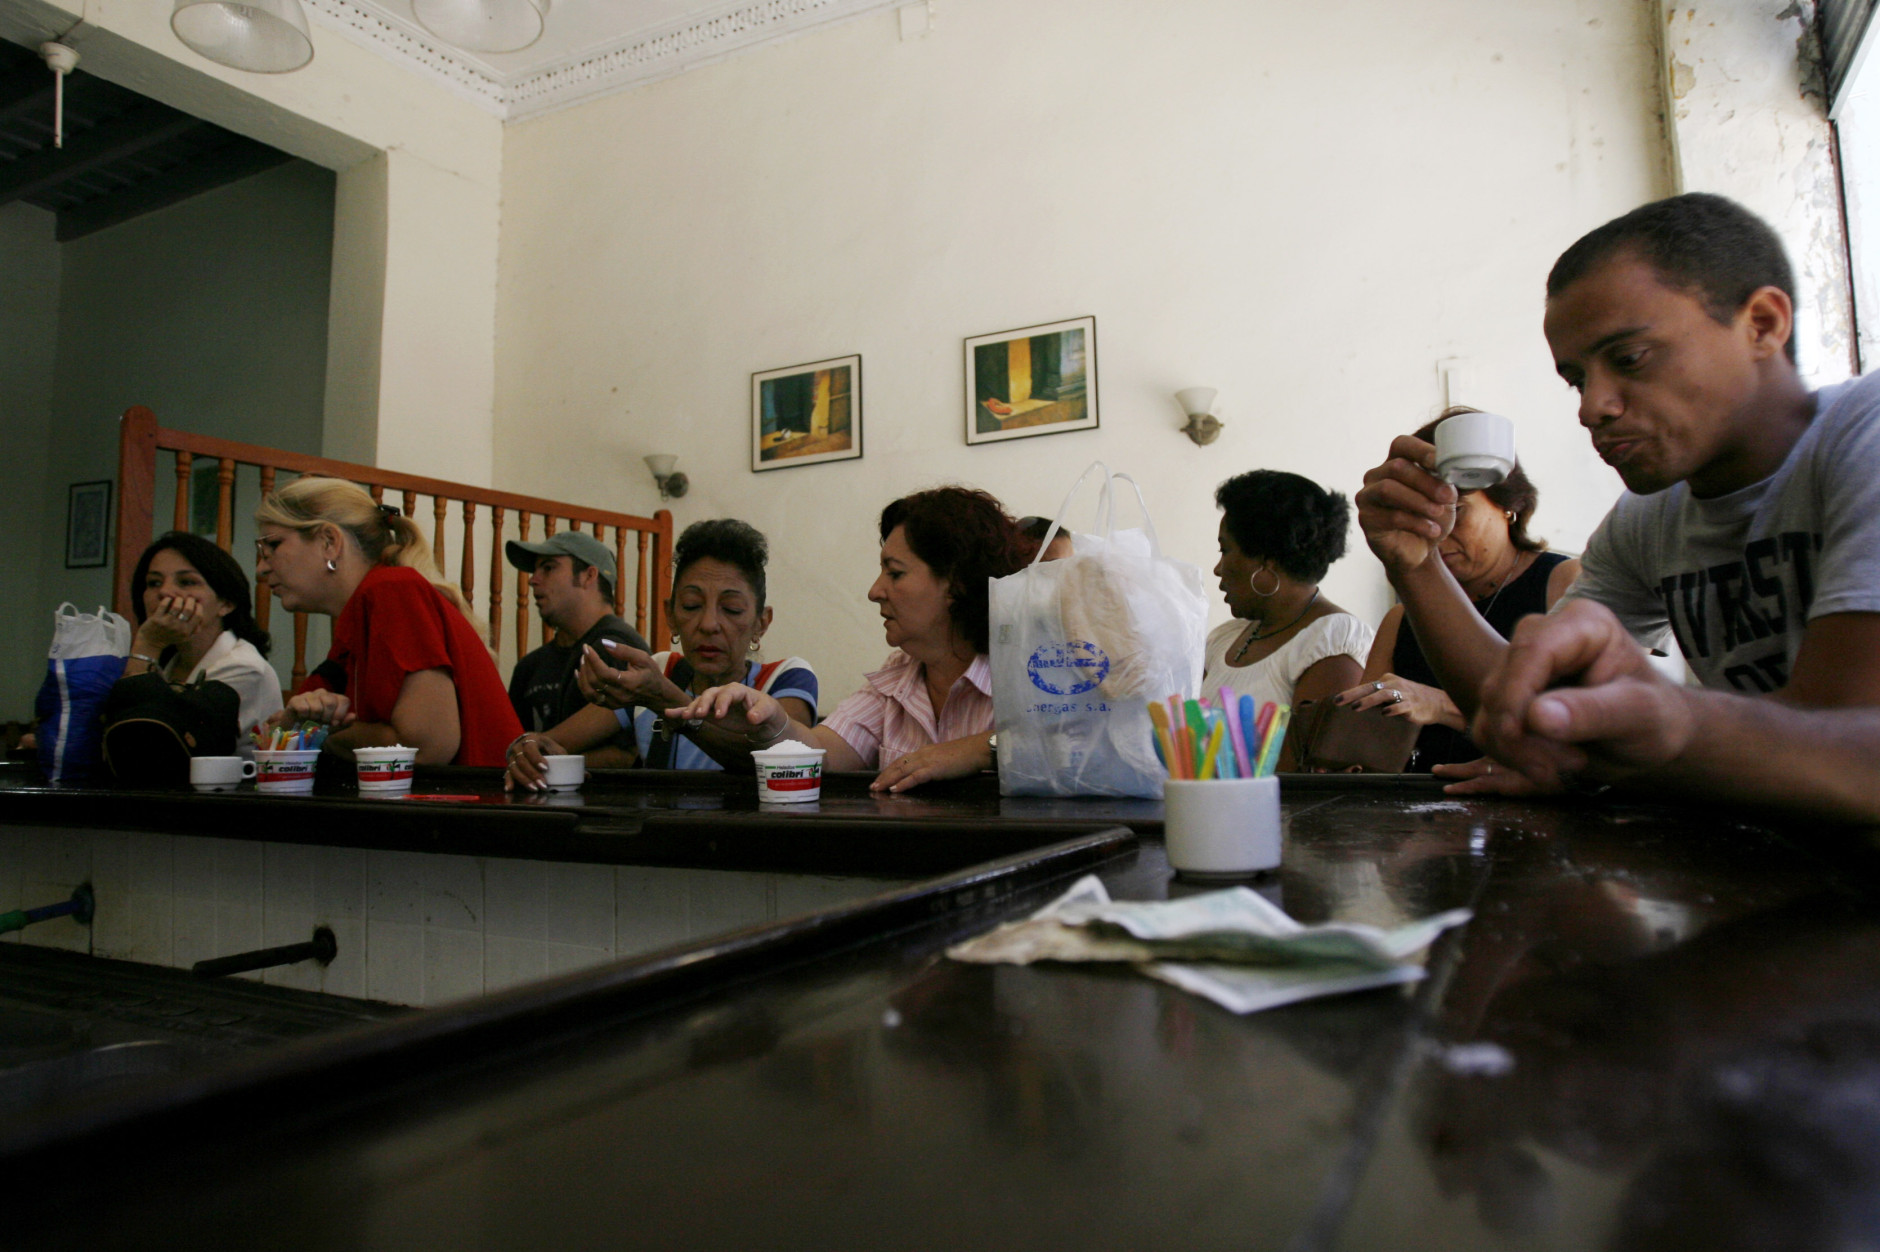 Cuban workers take a coffee break at a snack bar on Obispo street in Old Havana, Monday, June 11, 2007. One of the largest concentrations of venders selling street food for Cuban pesos can be found on Havana's bustling Obispo Street. (AP Photo/Javier Galeano)